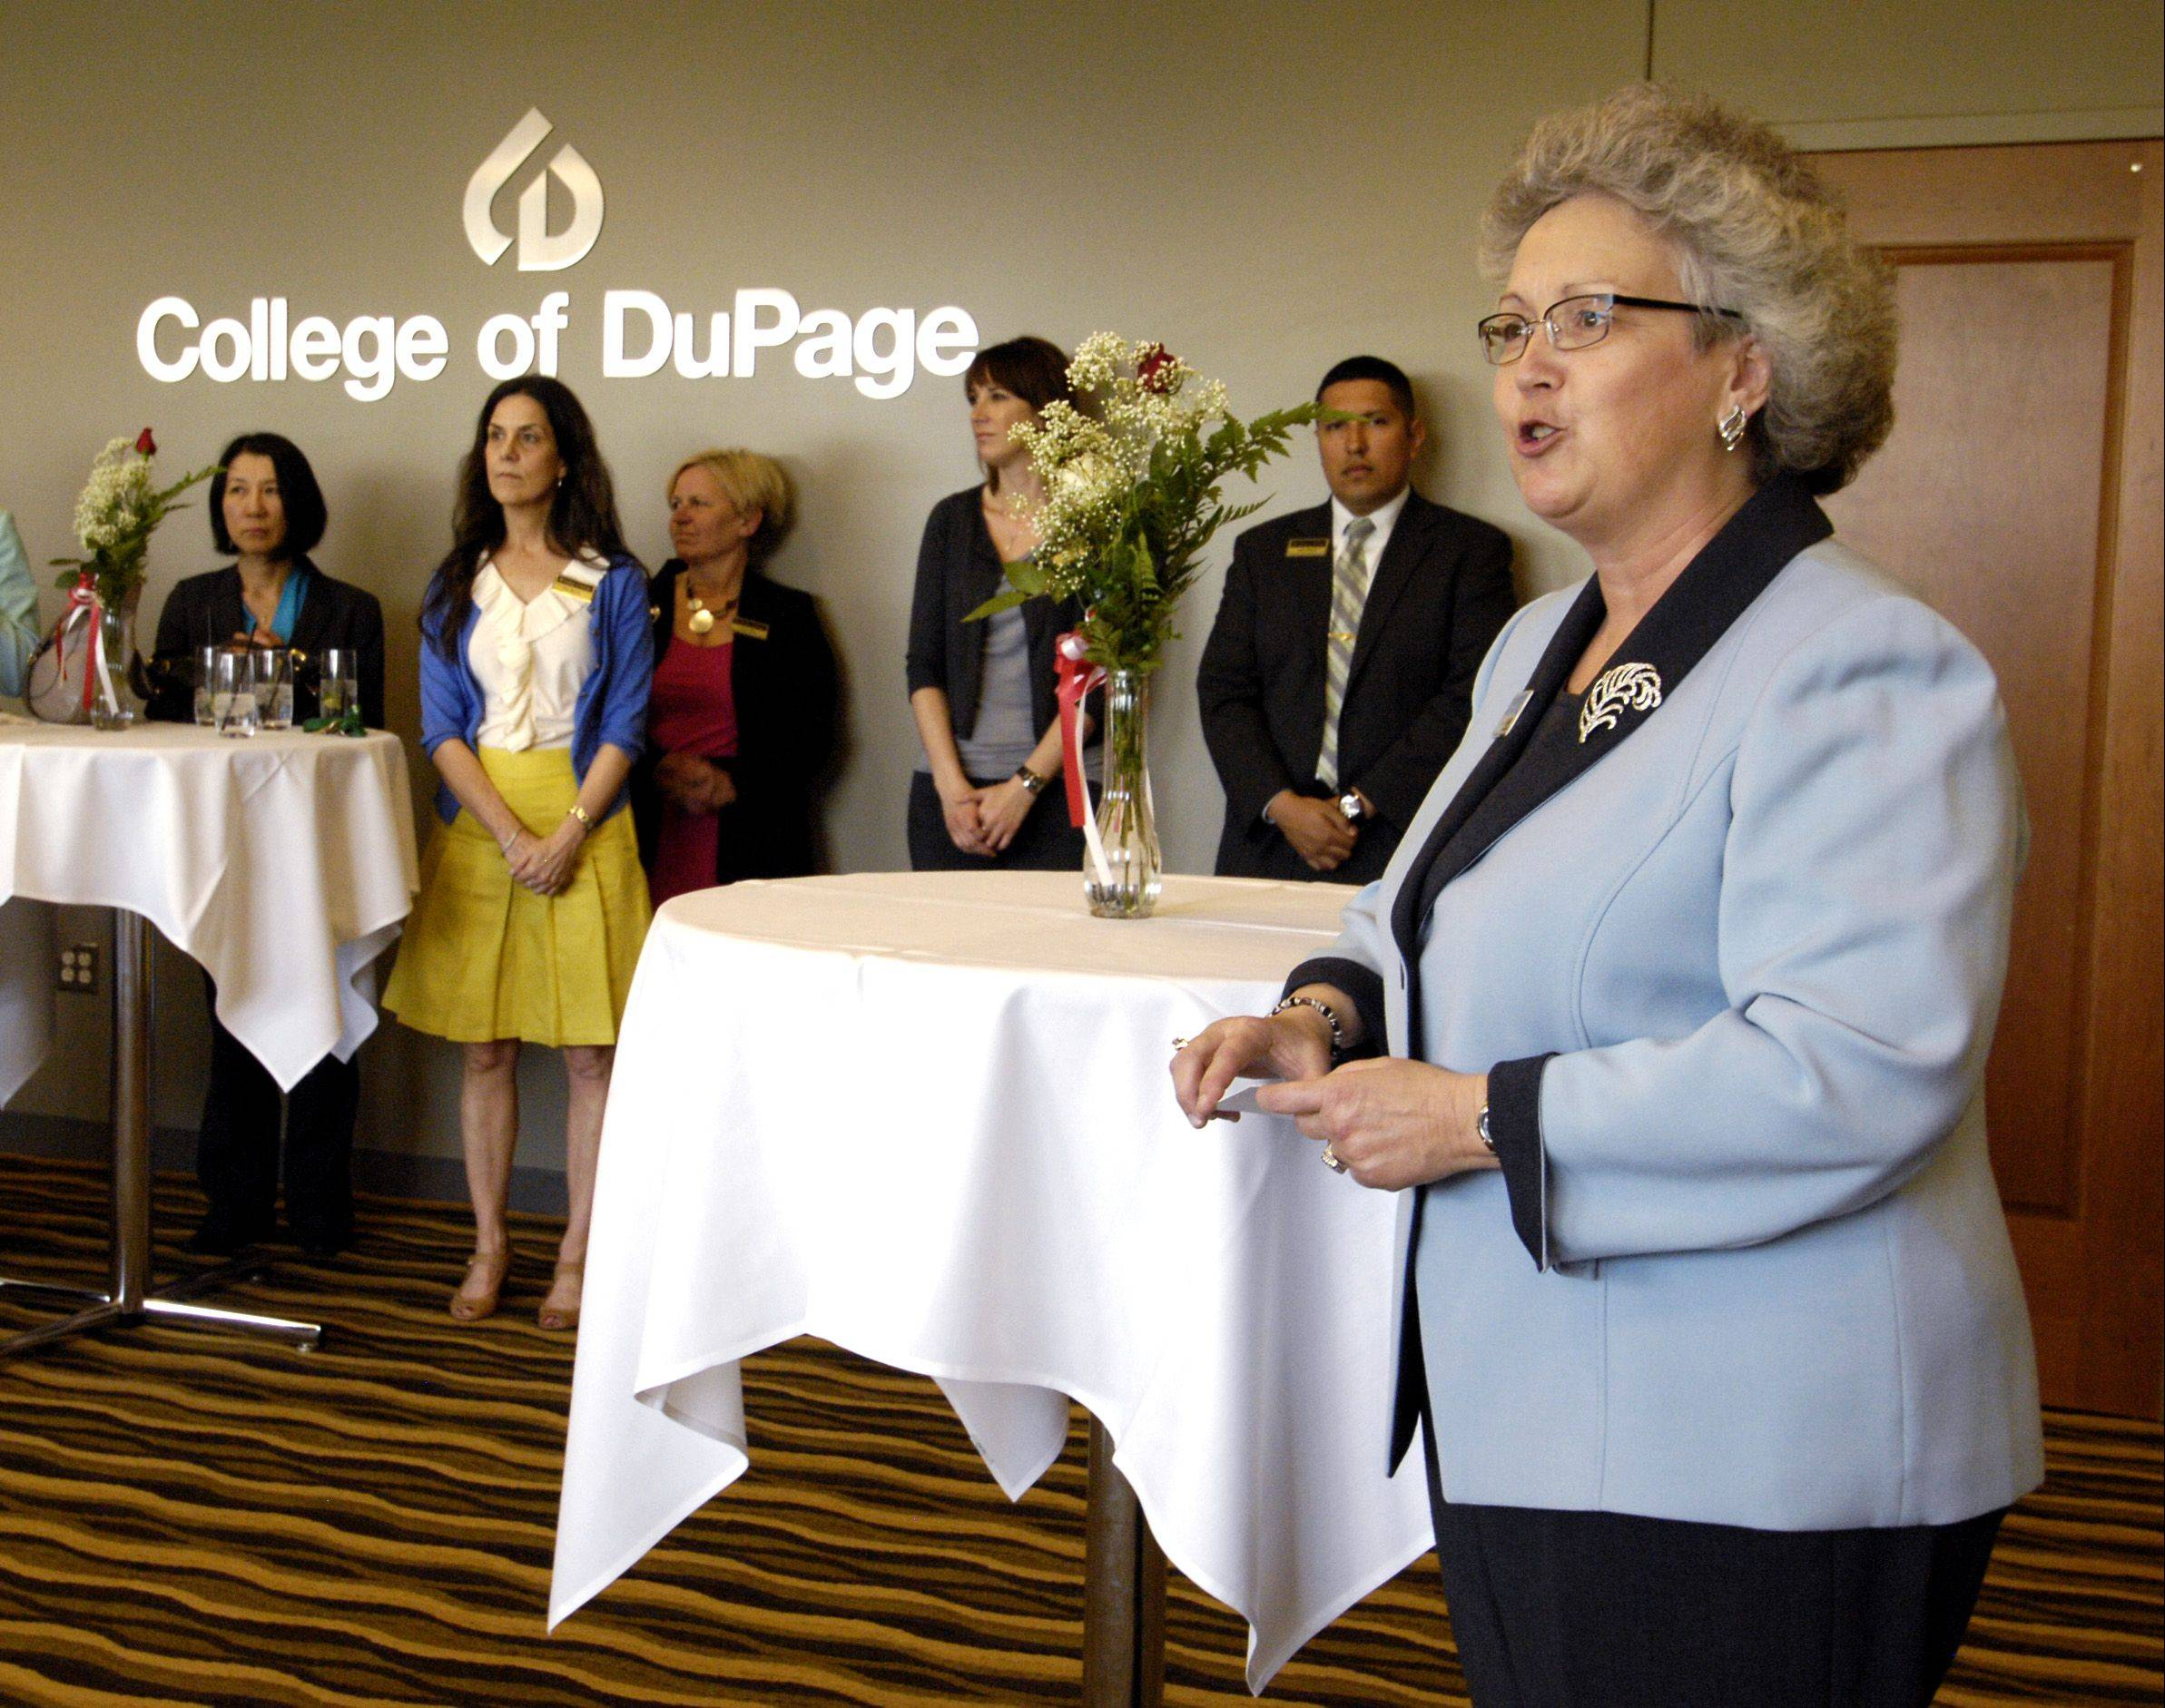 Glenda Gallisath of the College of DuPage coordinates the college's 3+1 programs that allow students to earn bachelor's degrees from universities that partner with COD, which is the only community college in the state to offer such a program.